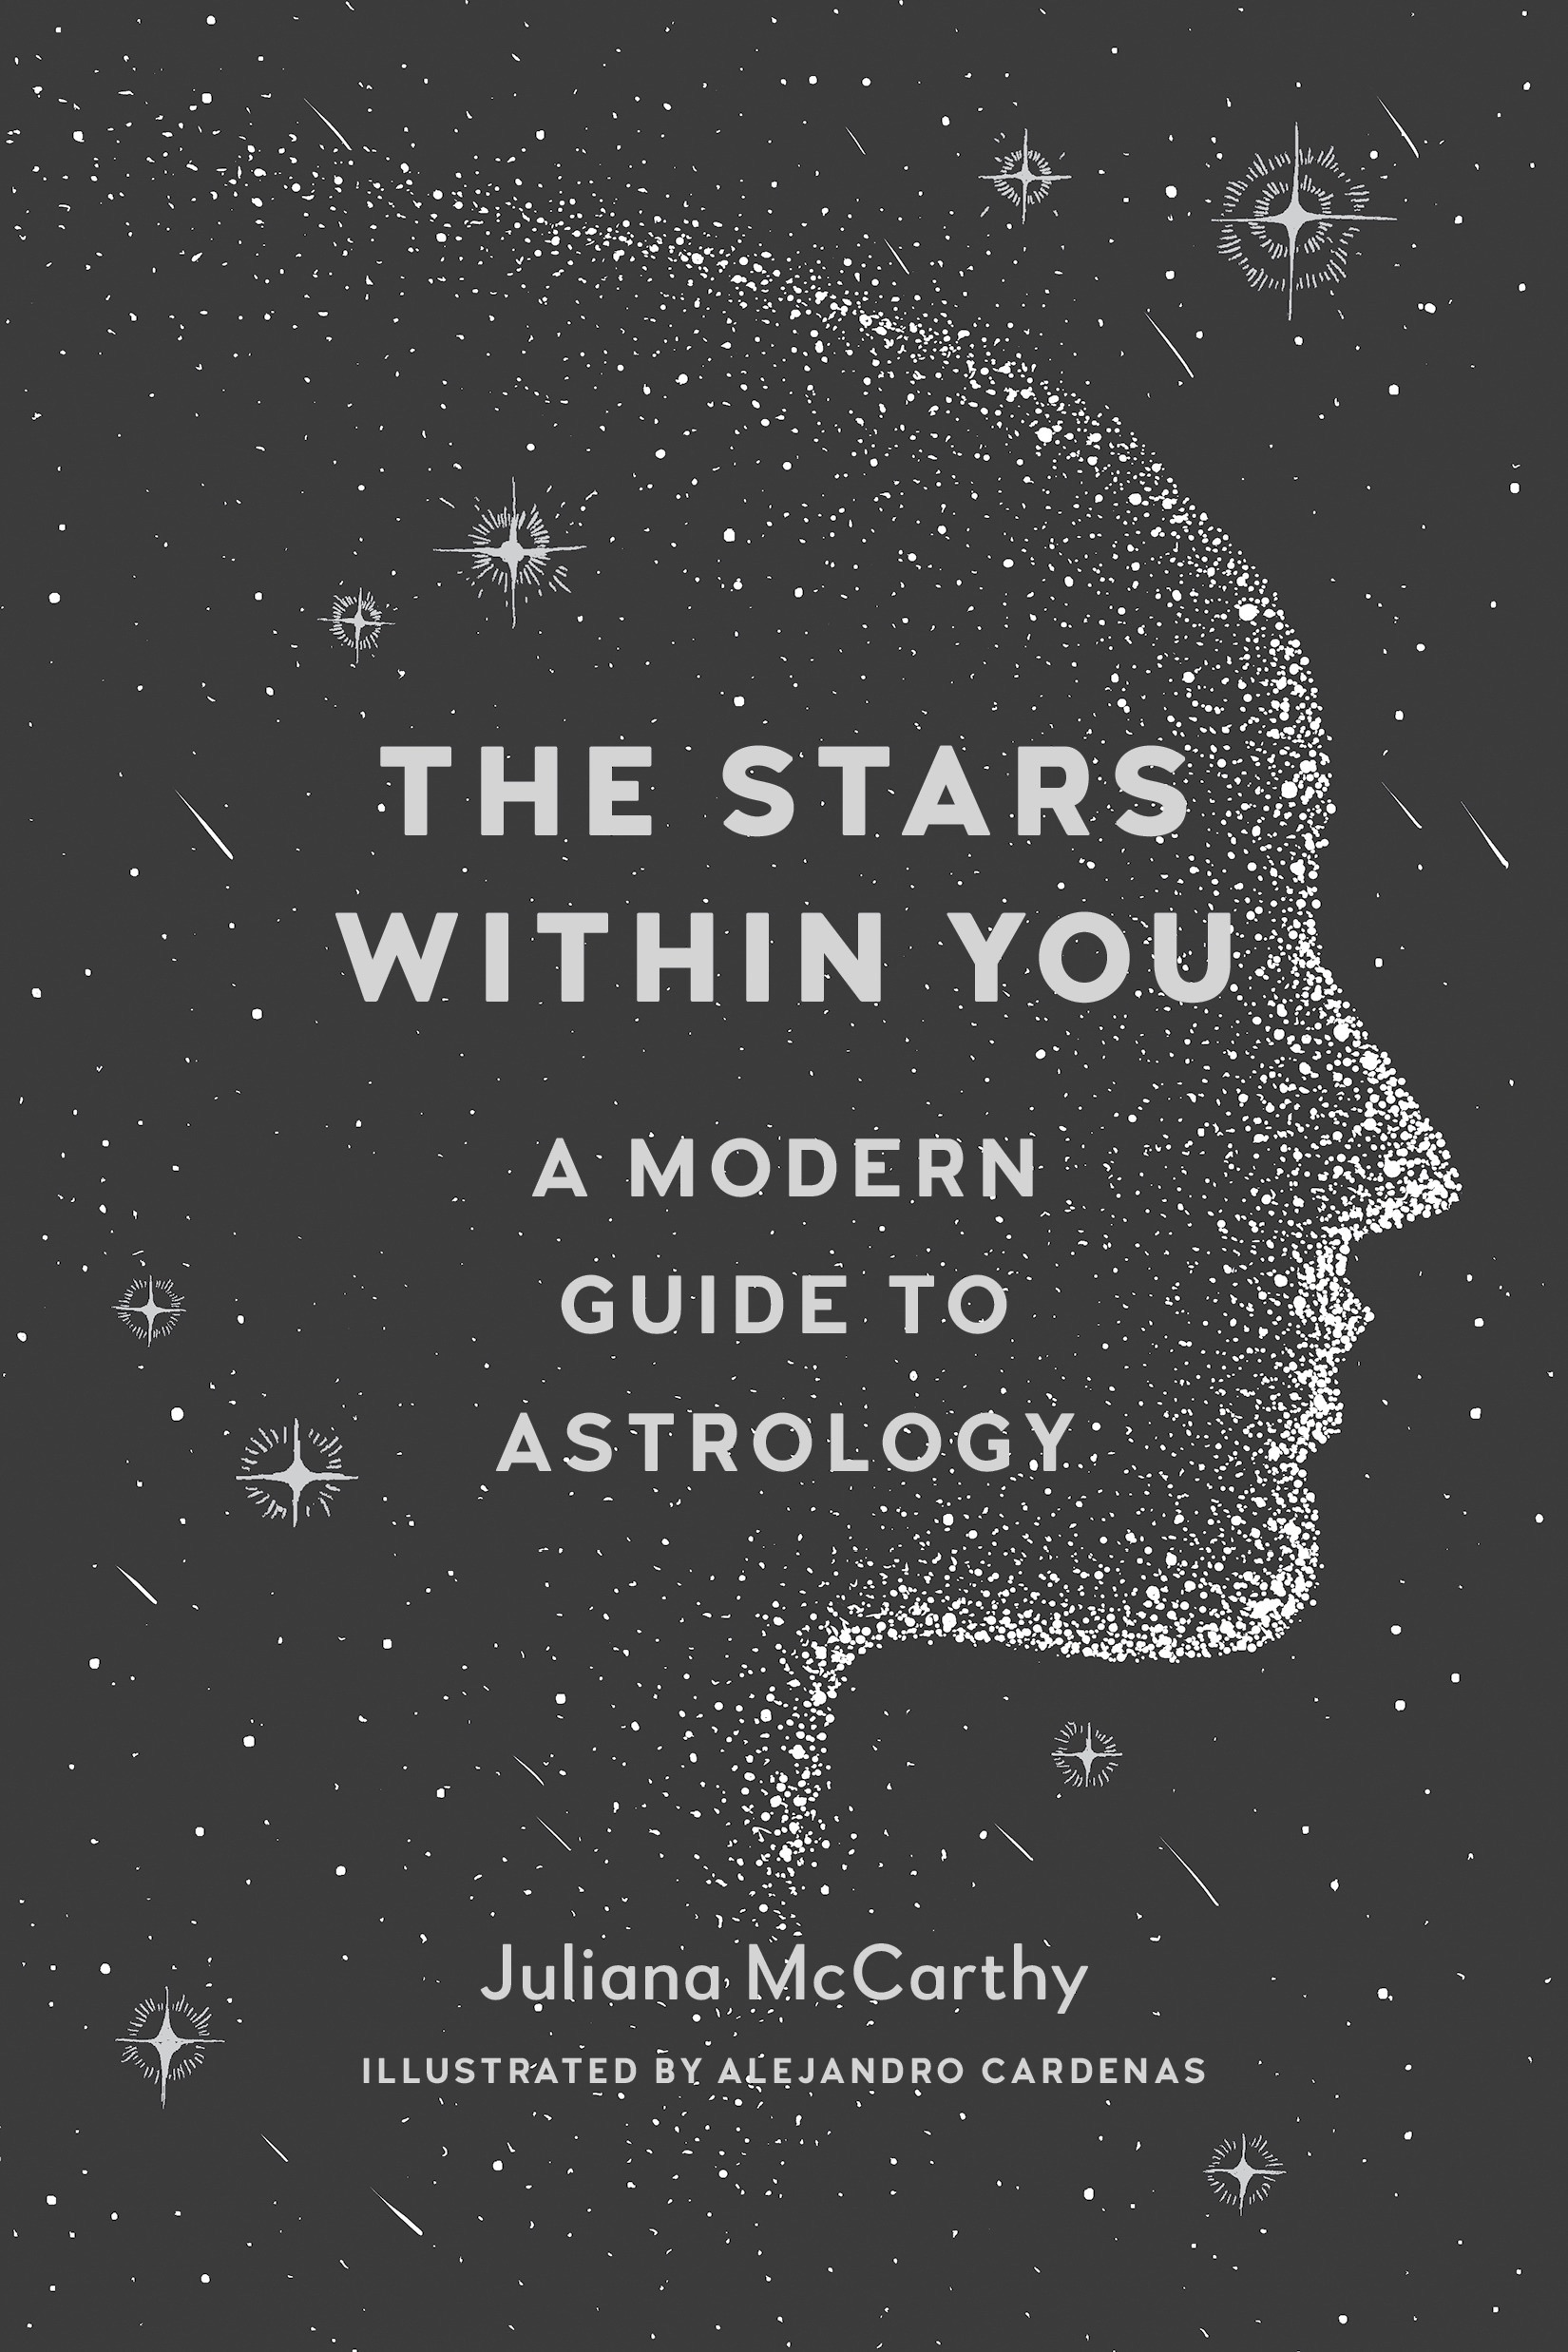 This is another great astrology guide for beginners.